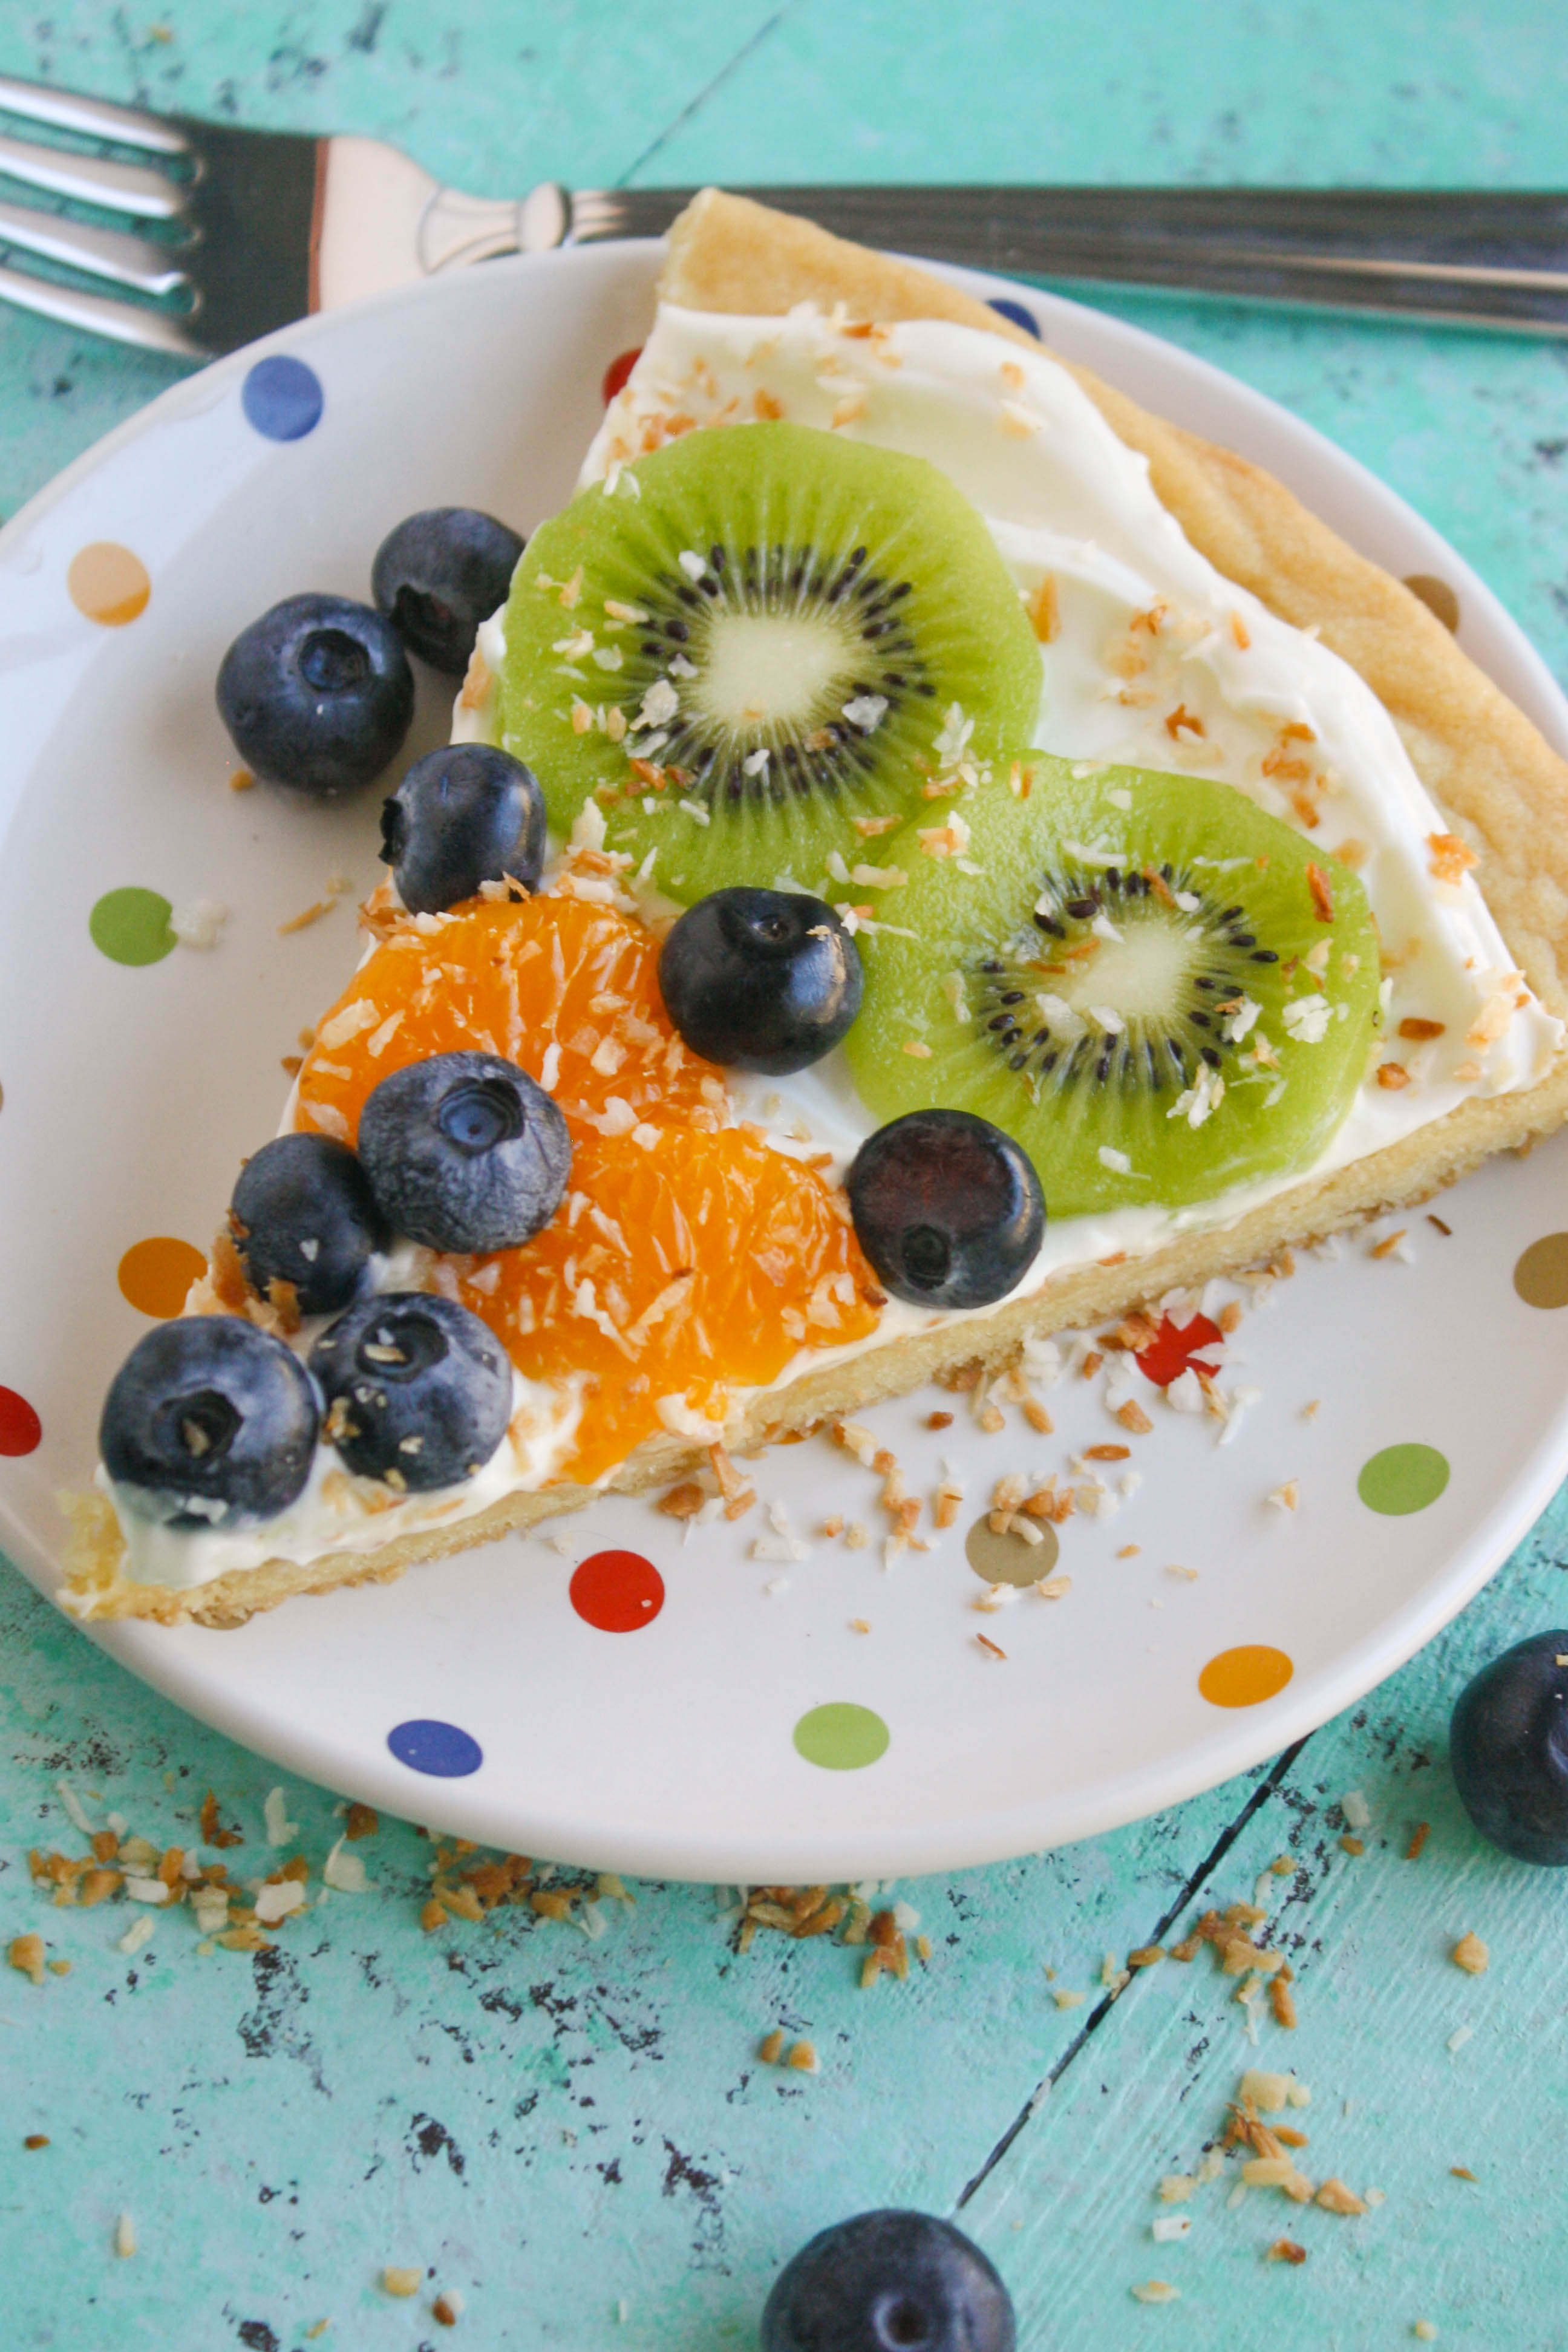 Sugar Cookie Fruit Pizza is ther perfect summer party treat! Make one for your next get together for an easy-to-make dessert!